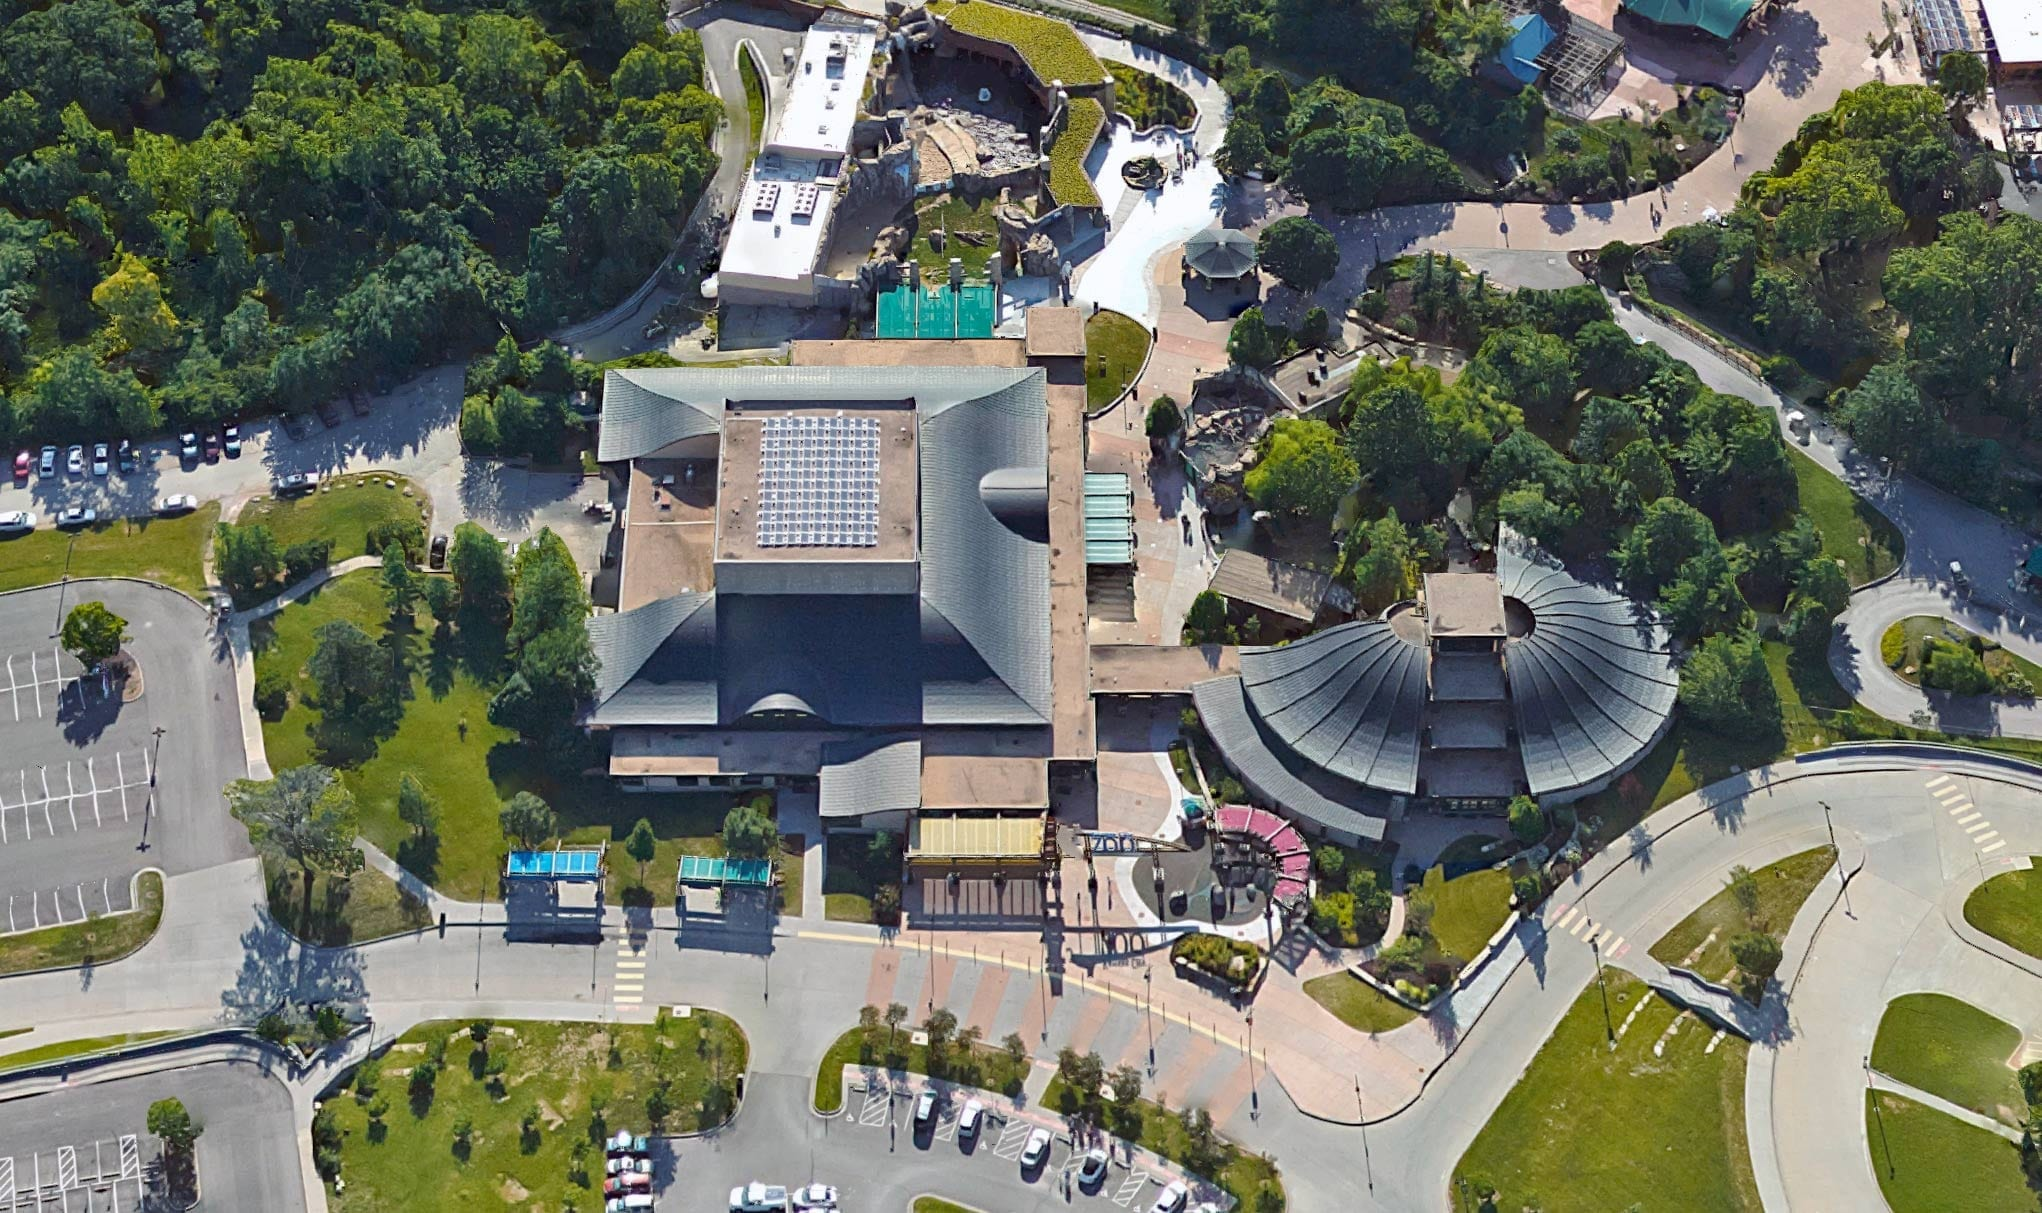 Aerial imagery of the Deramus entrance pavilion at the Kansas City Zoo.